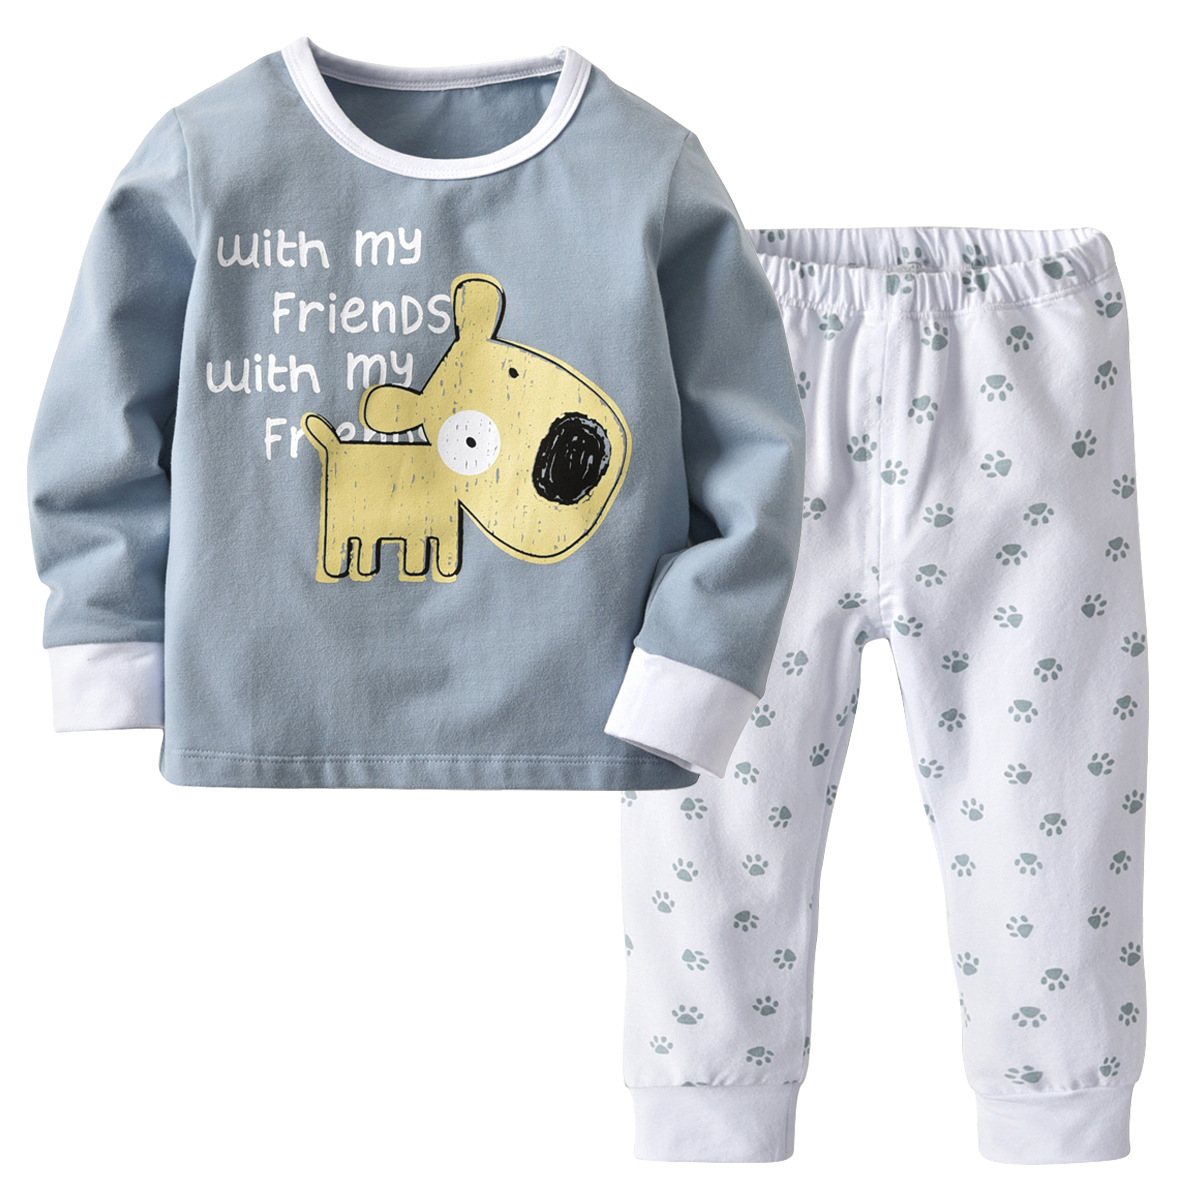 Kids Pijama Boys Pijamas Cartoon Pyjama Baby Boy Christmas Pajamas Teens Pyjamas Kids Toddle Homewear Sets Sleepwear 2-14Y CA275